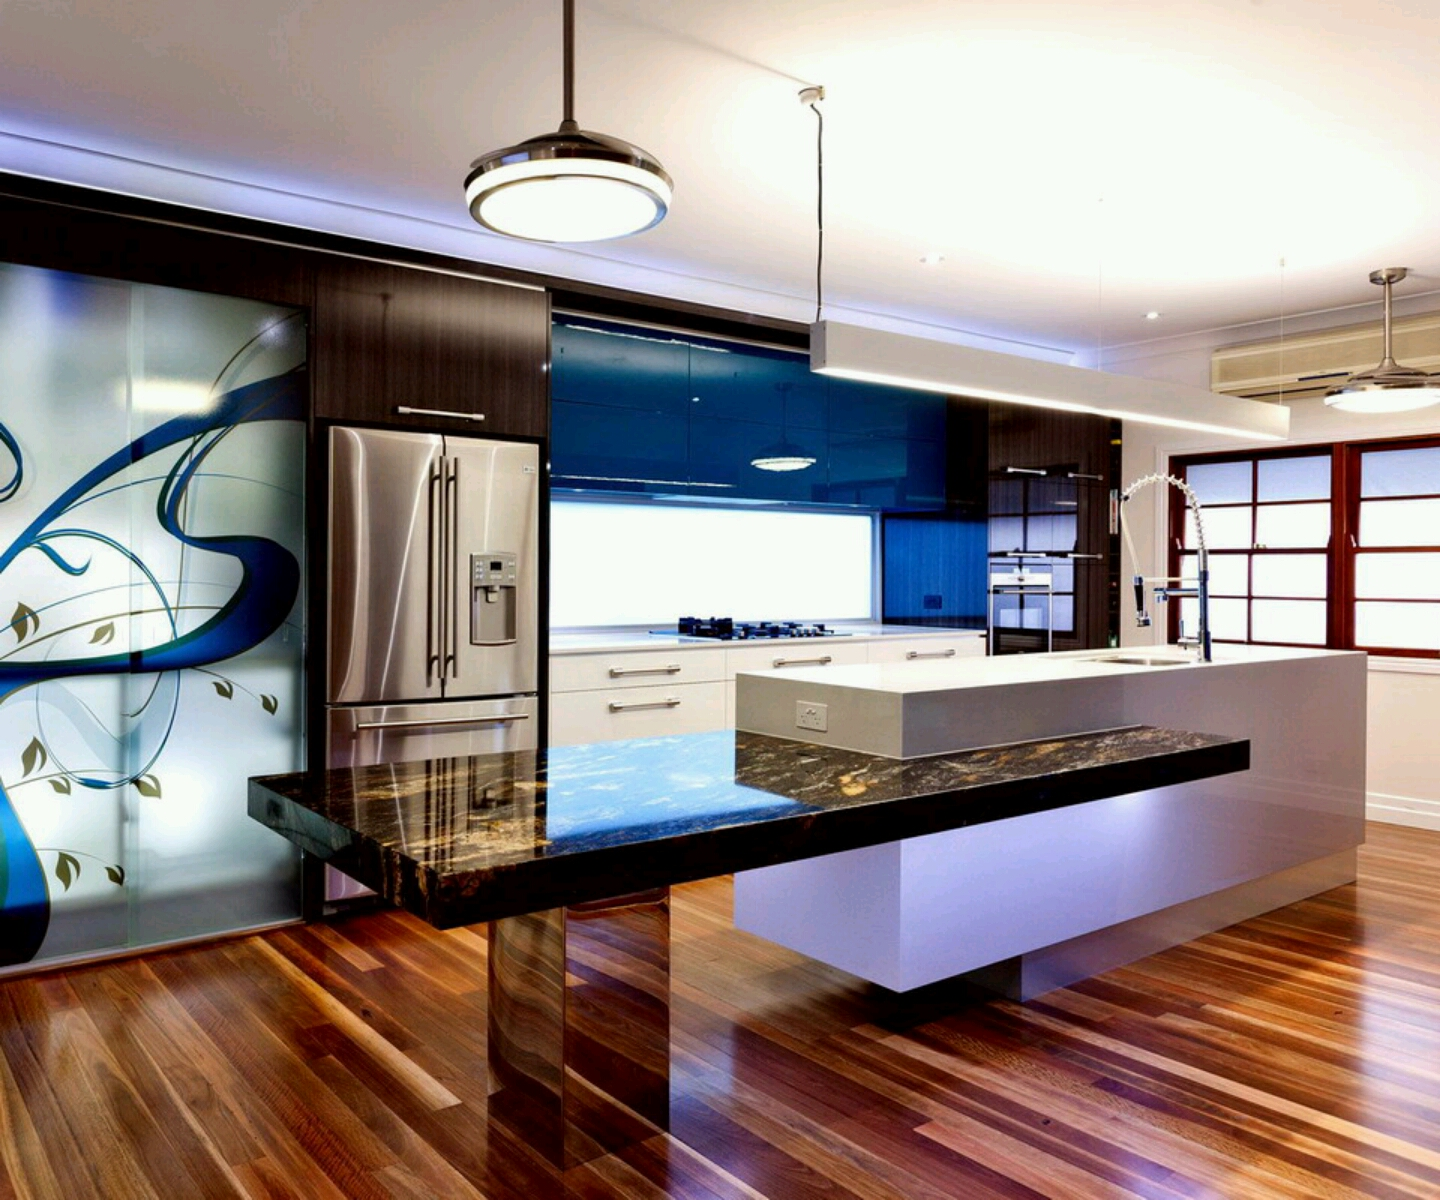 Ultra modern kitchen designs ideas new home designs for New kitchen ideas